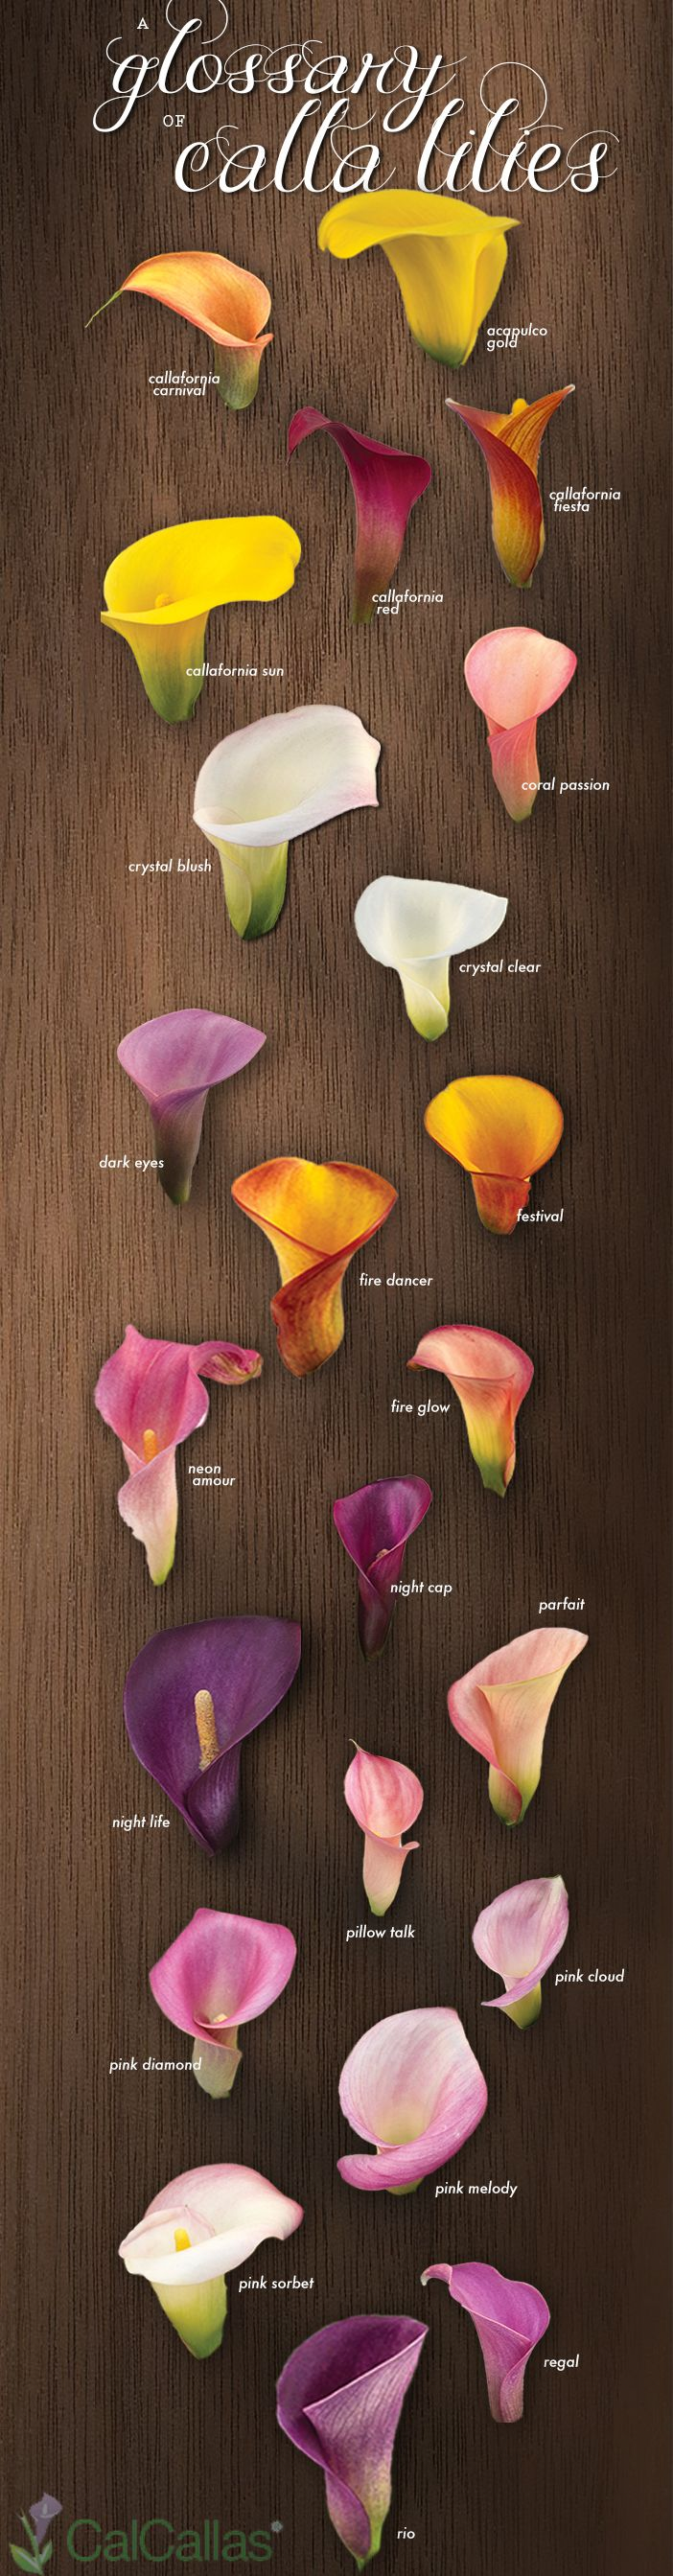 Best 20 lilies ideas on pinterest lily lilies flowers and a glossary of colored calla lilies mini calla lily colors dhlflorist Image collections